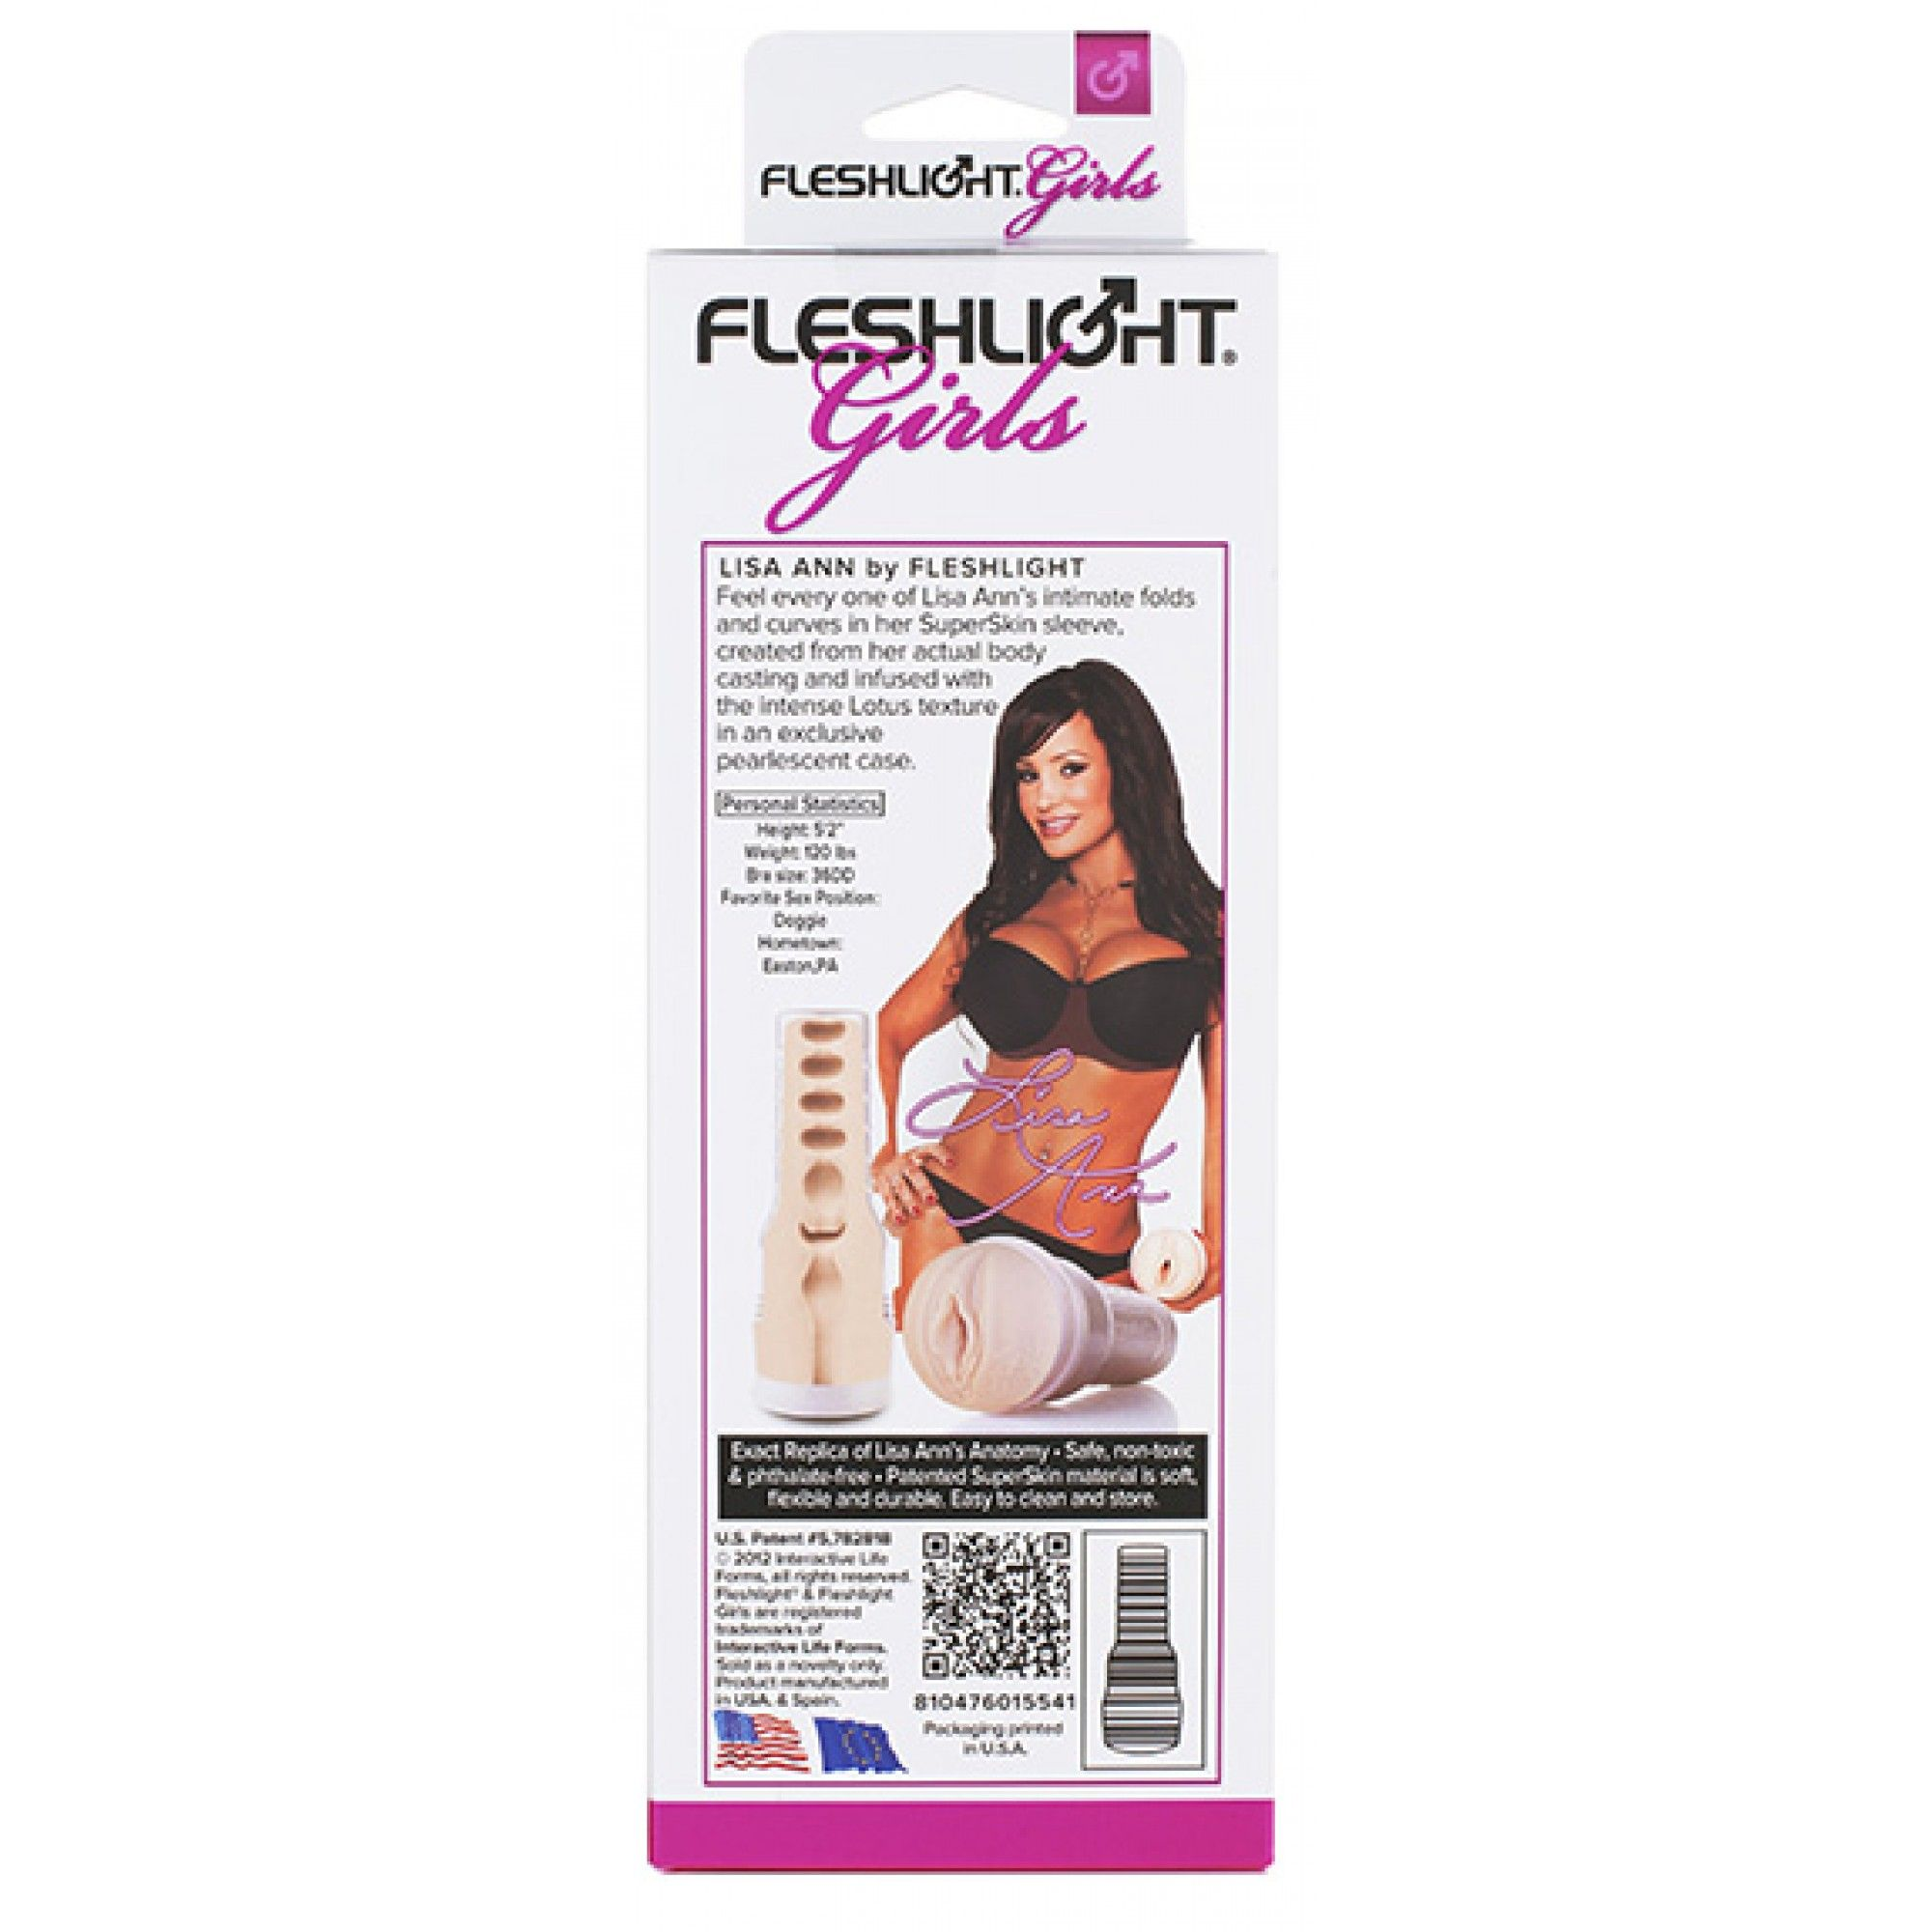 fleshlight lotus bangkok massage